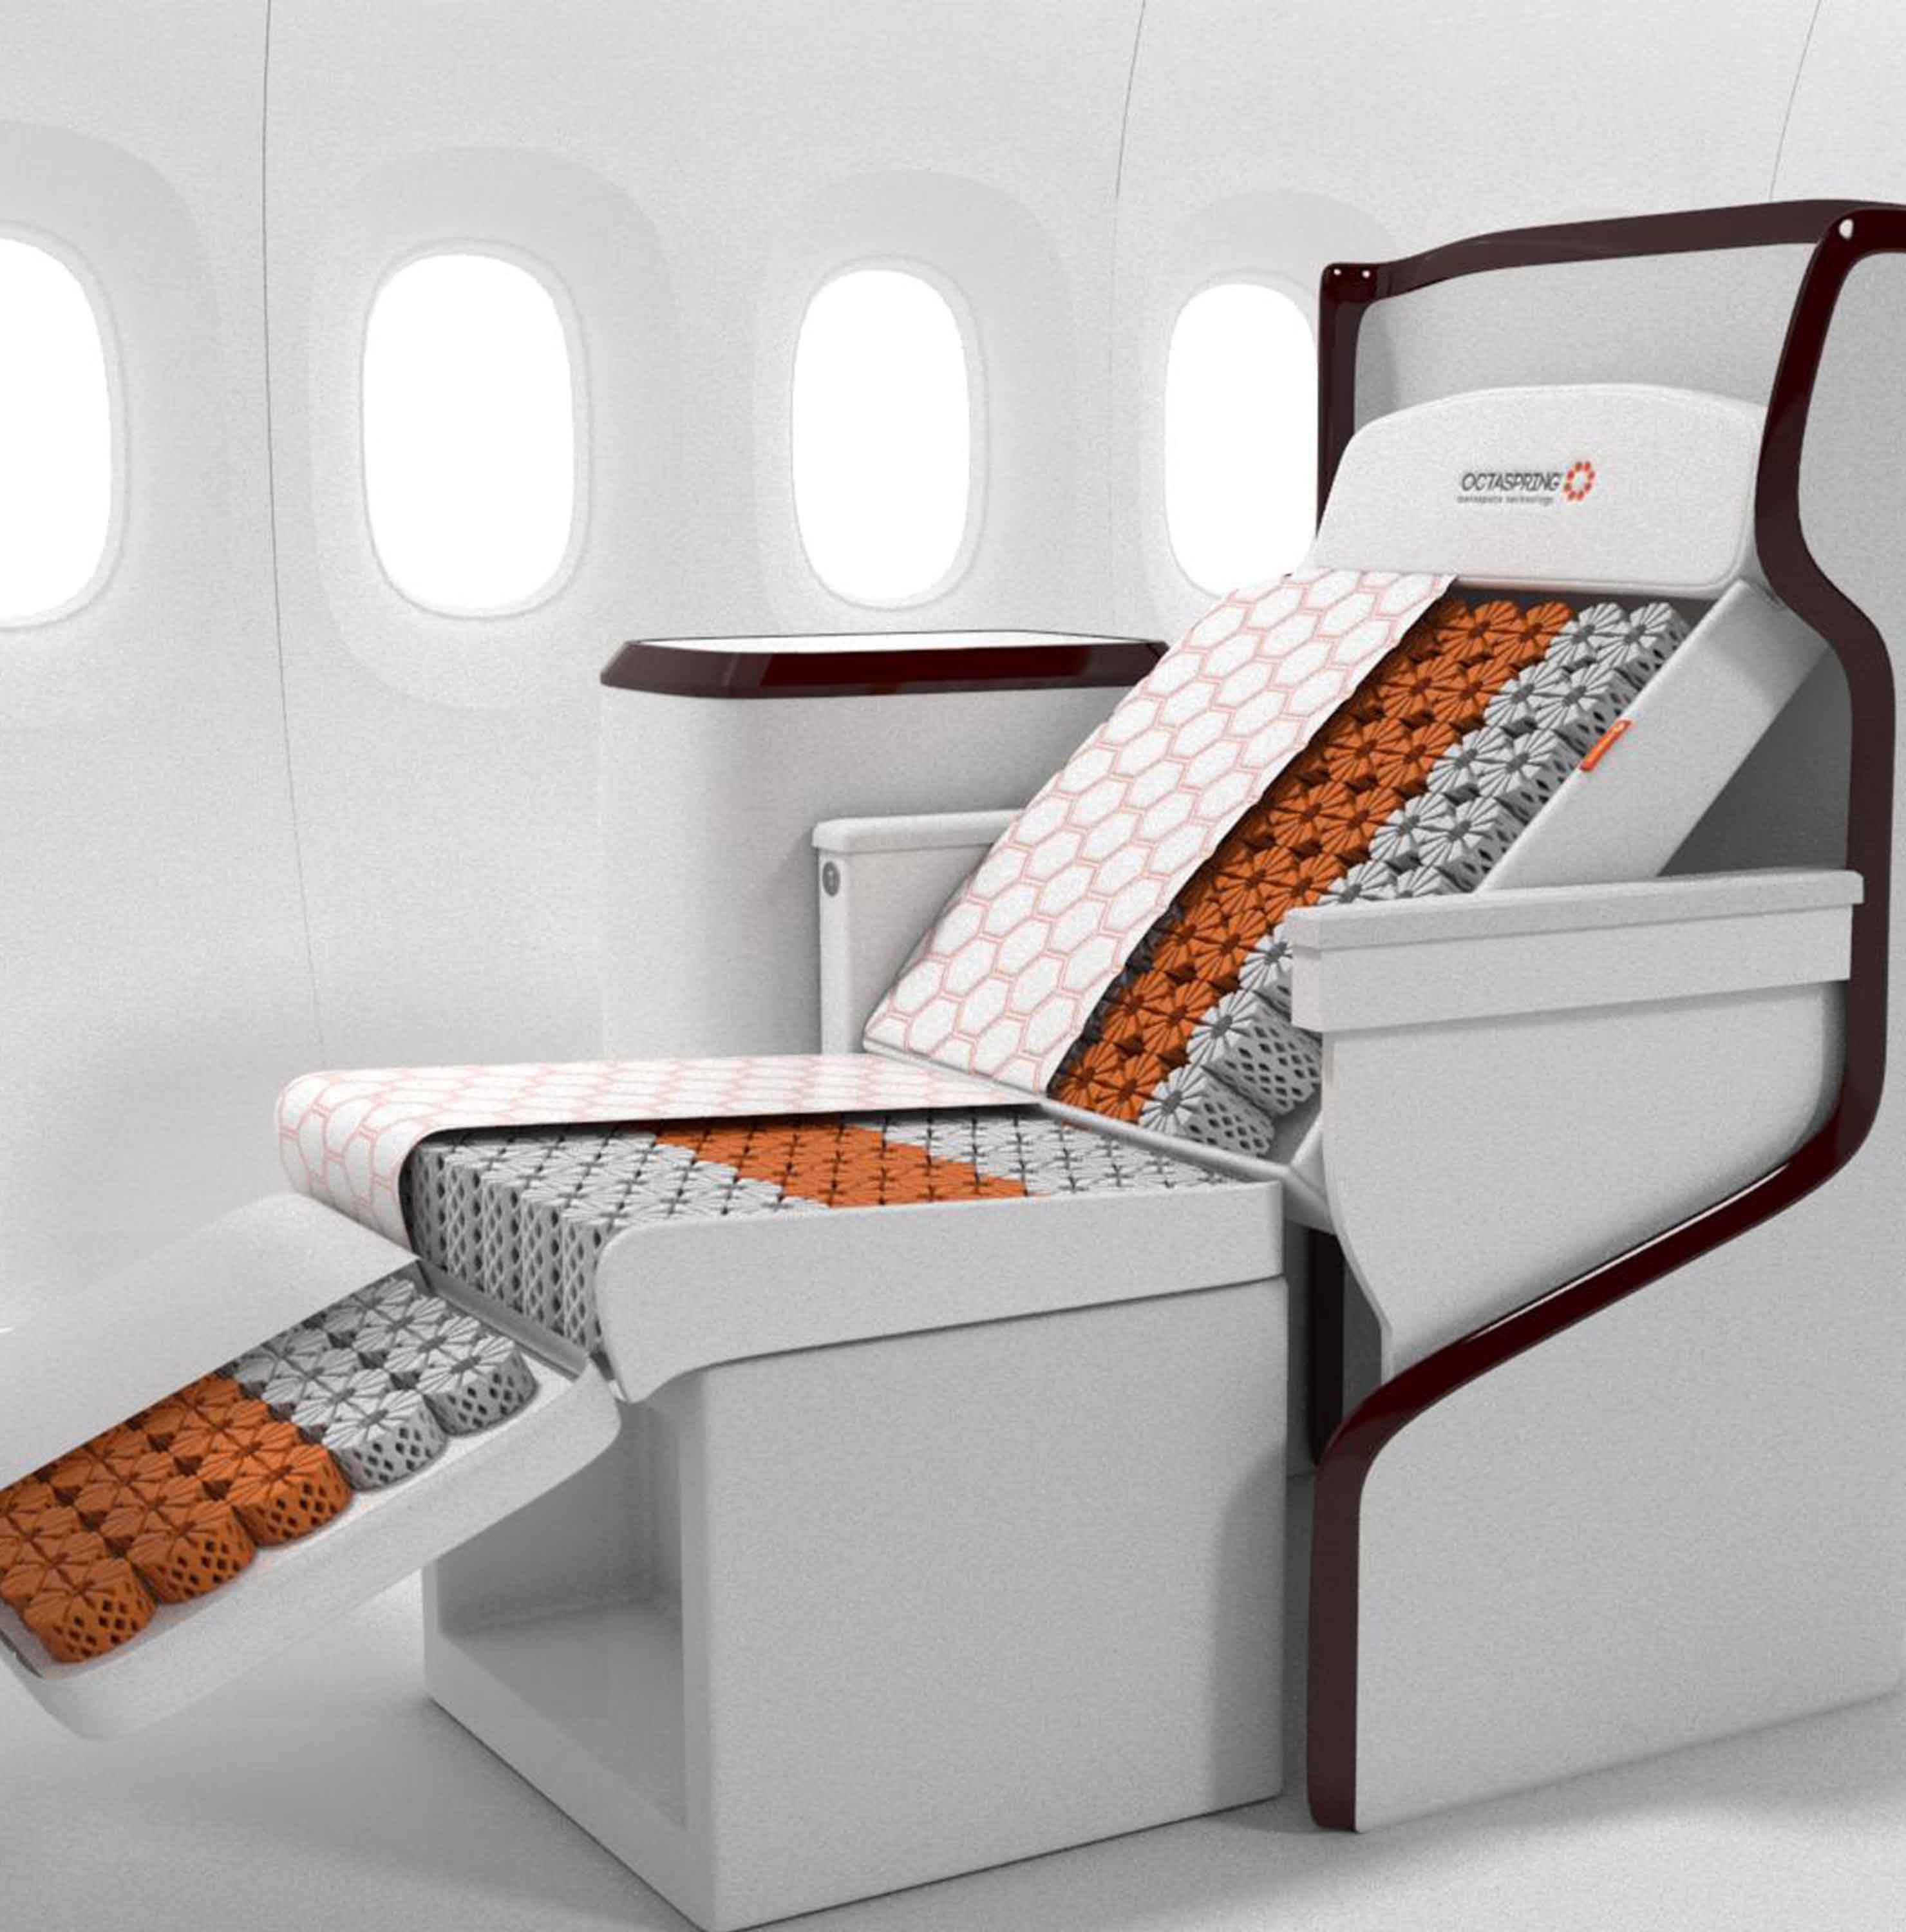 Business class seat cushions